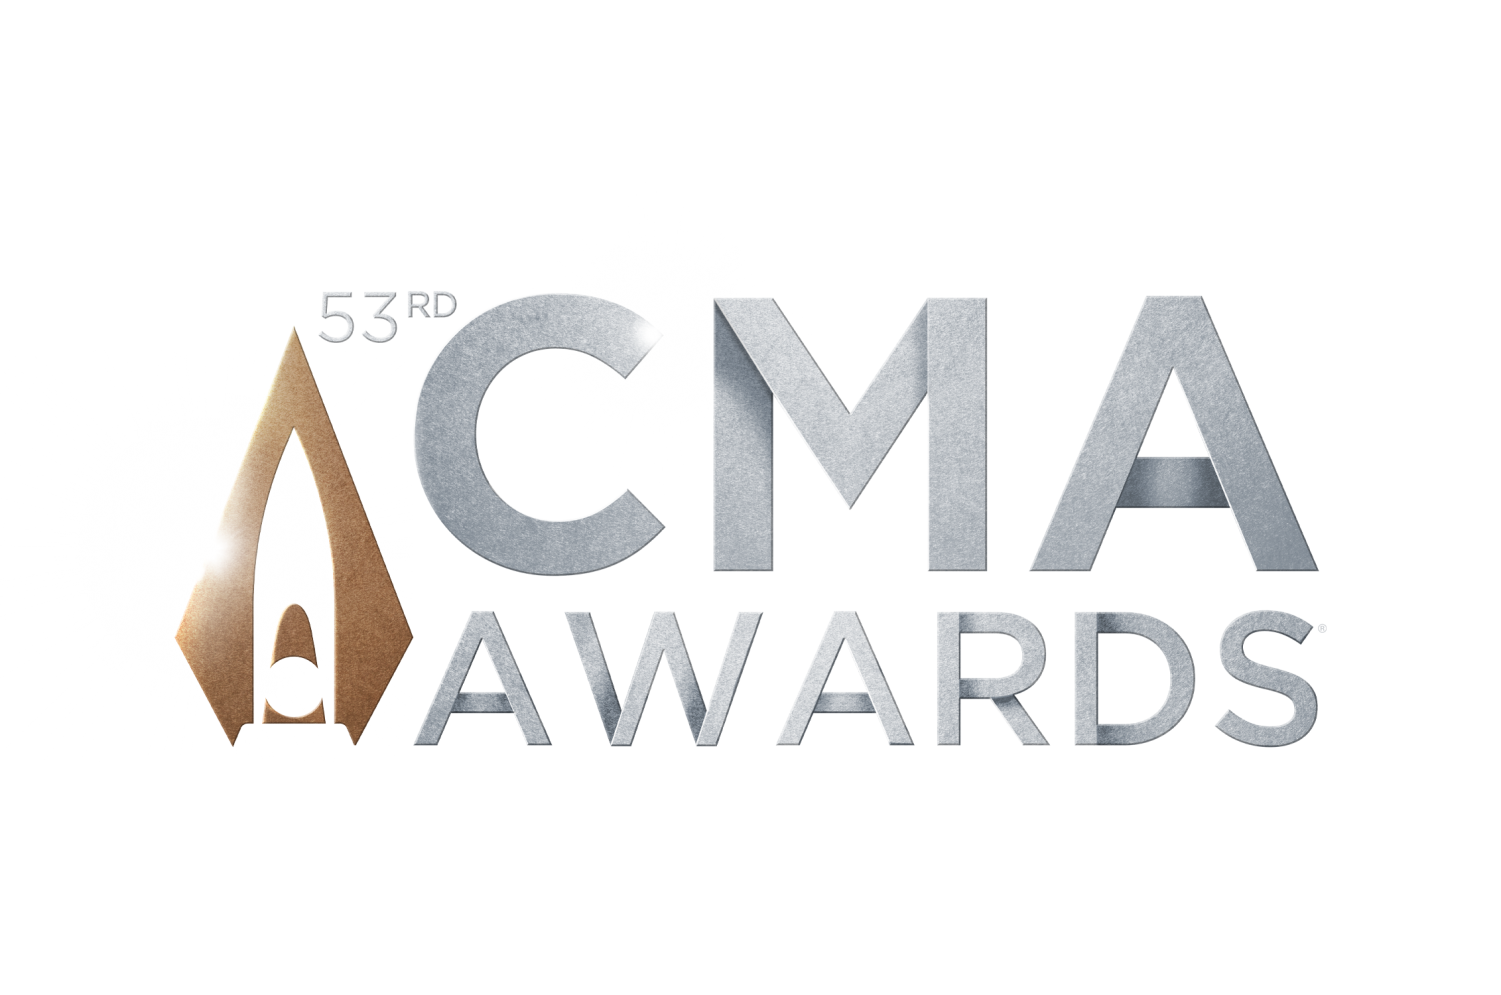 Country Music Association (CMA) hosted their 53rd award show this past November 13, 2019. https://cmaworld.app.box.com/s/5cr9snm1ixnrpujkuzw6om4bryprgi9i